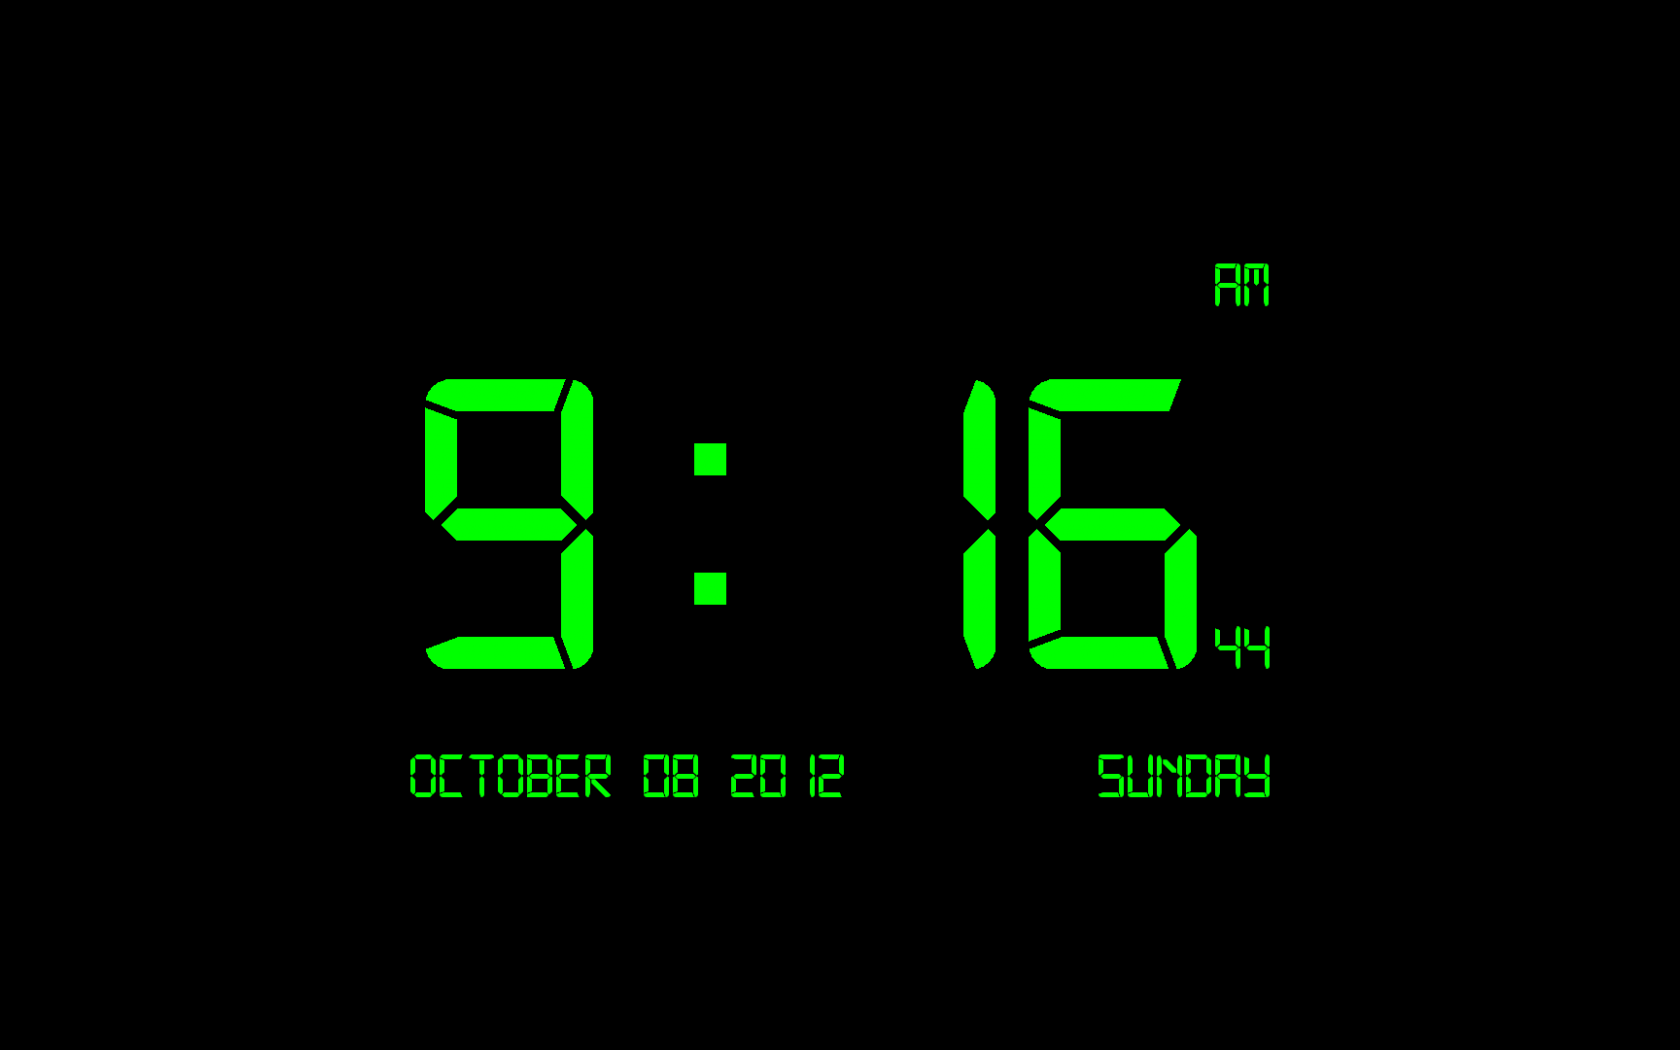 Free download Digital Clock 7 Digital Clock 7 is a screen